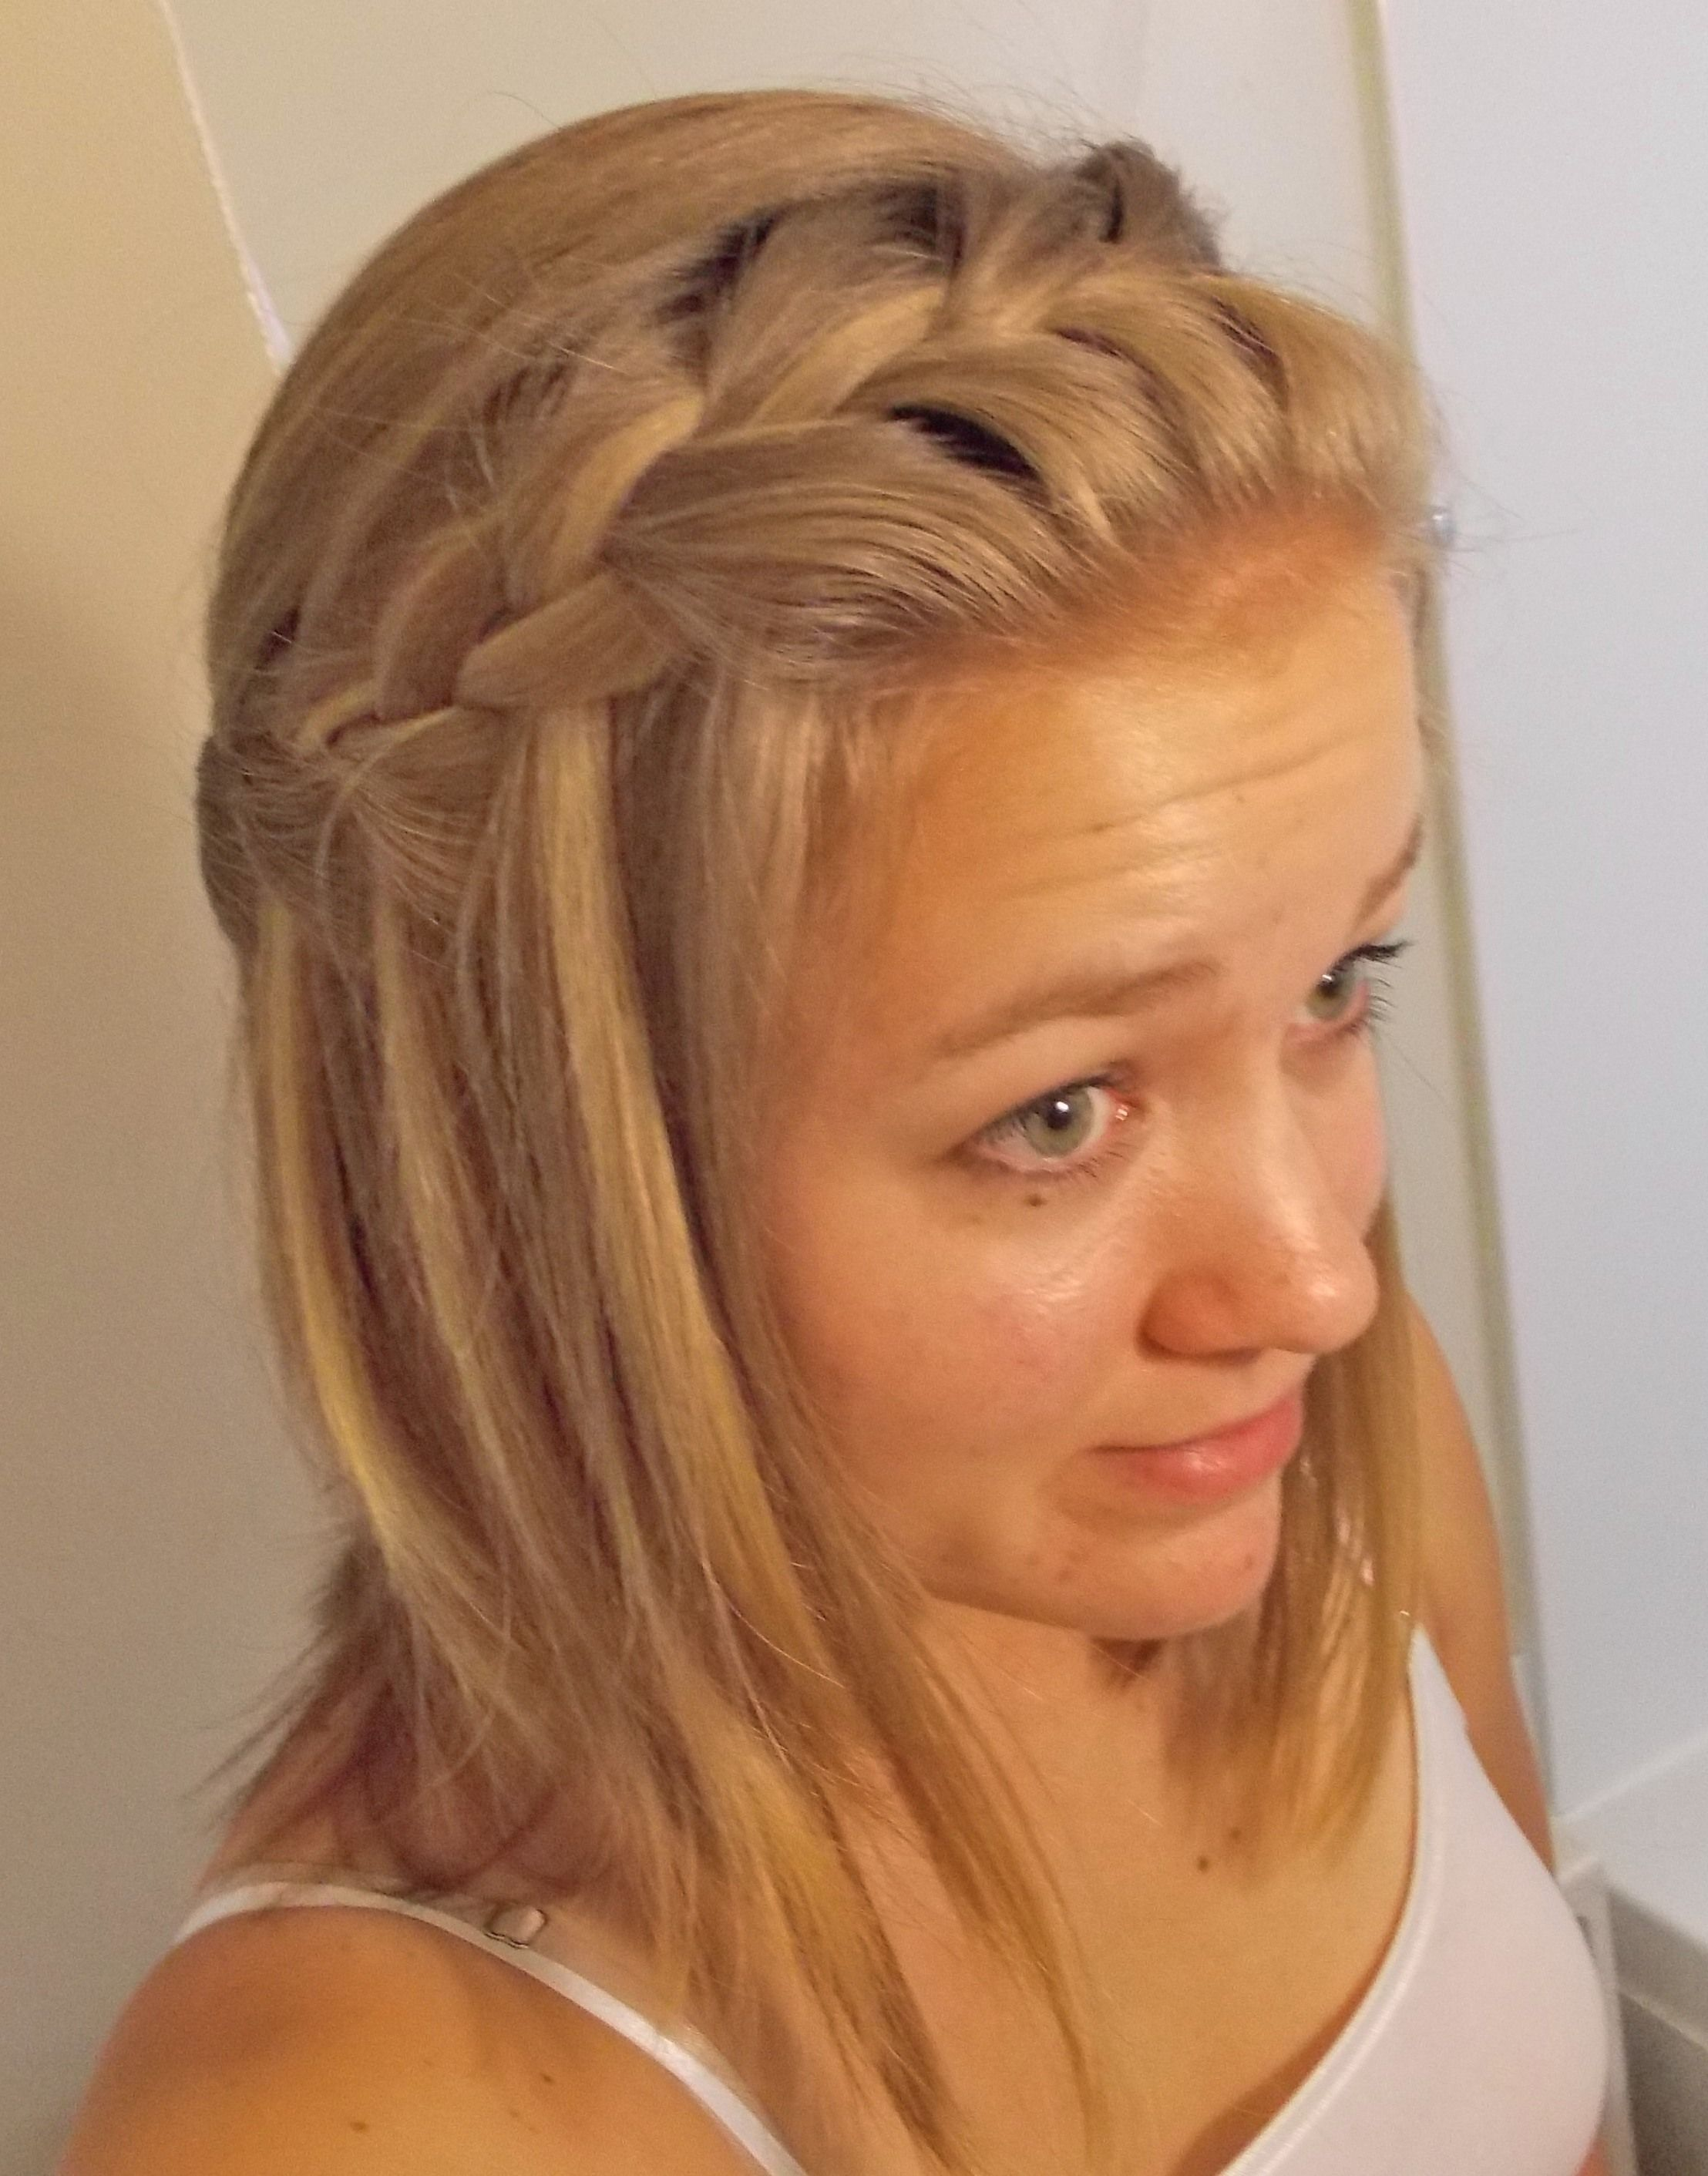 Miraculous 1000 Images About Braid Hairstyle On Pinterest Waterfall Braids Hairstyles For Men Maxibearus